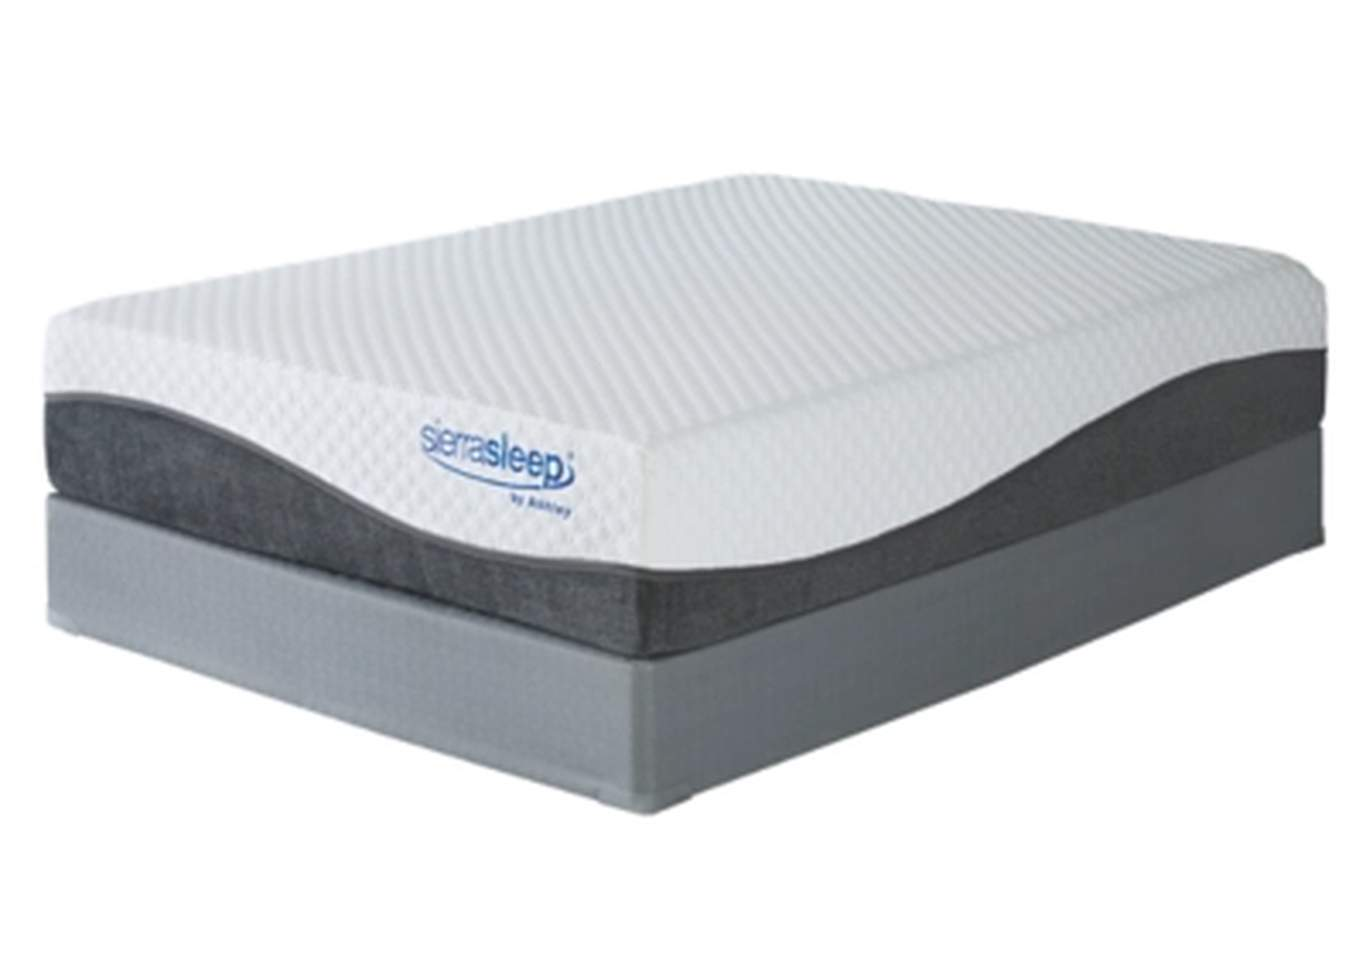 Mygel Hybrid 1300 King Mattress w/Foundation,Sierra Sleep by Ashley